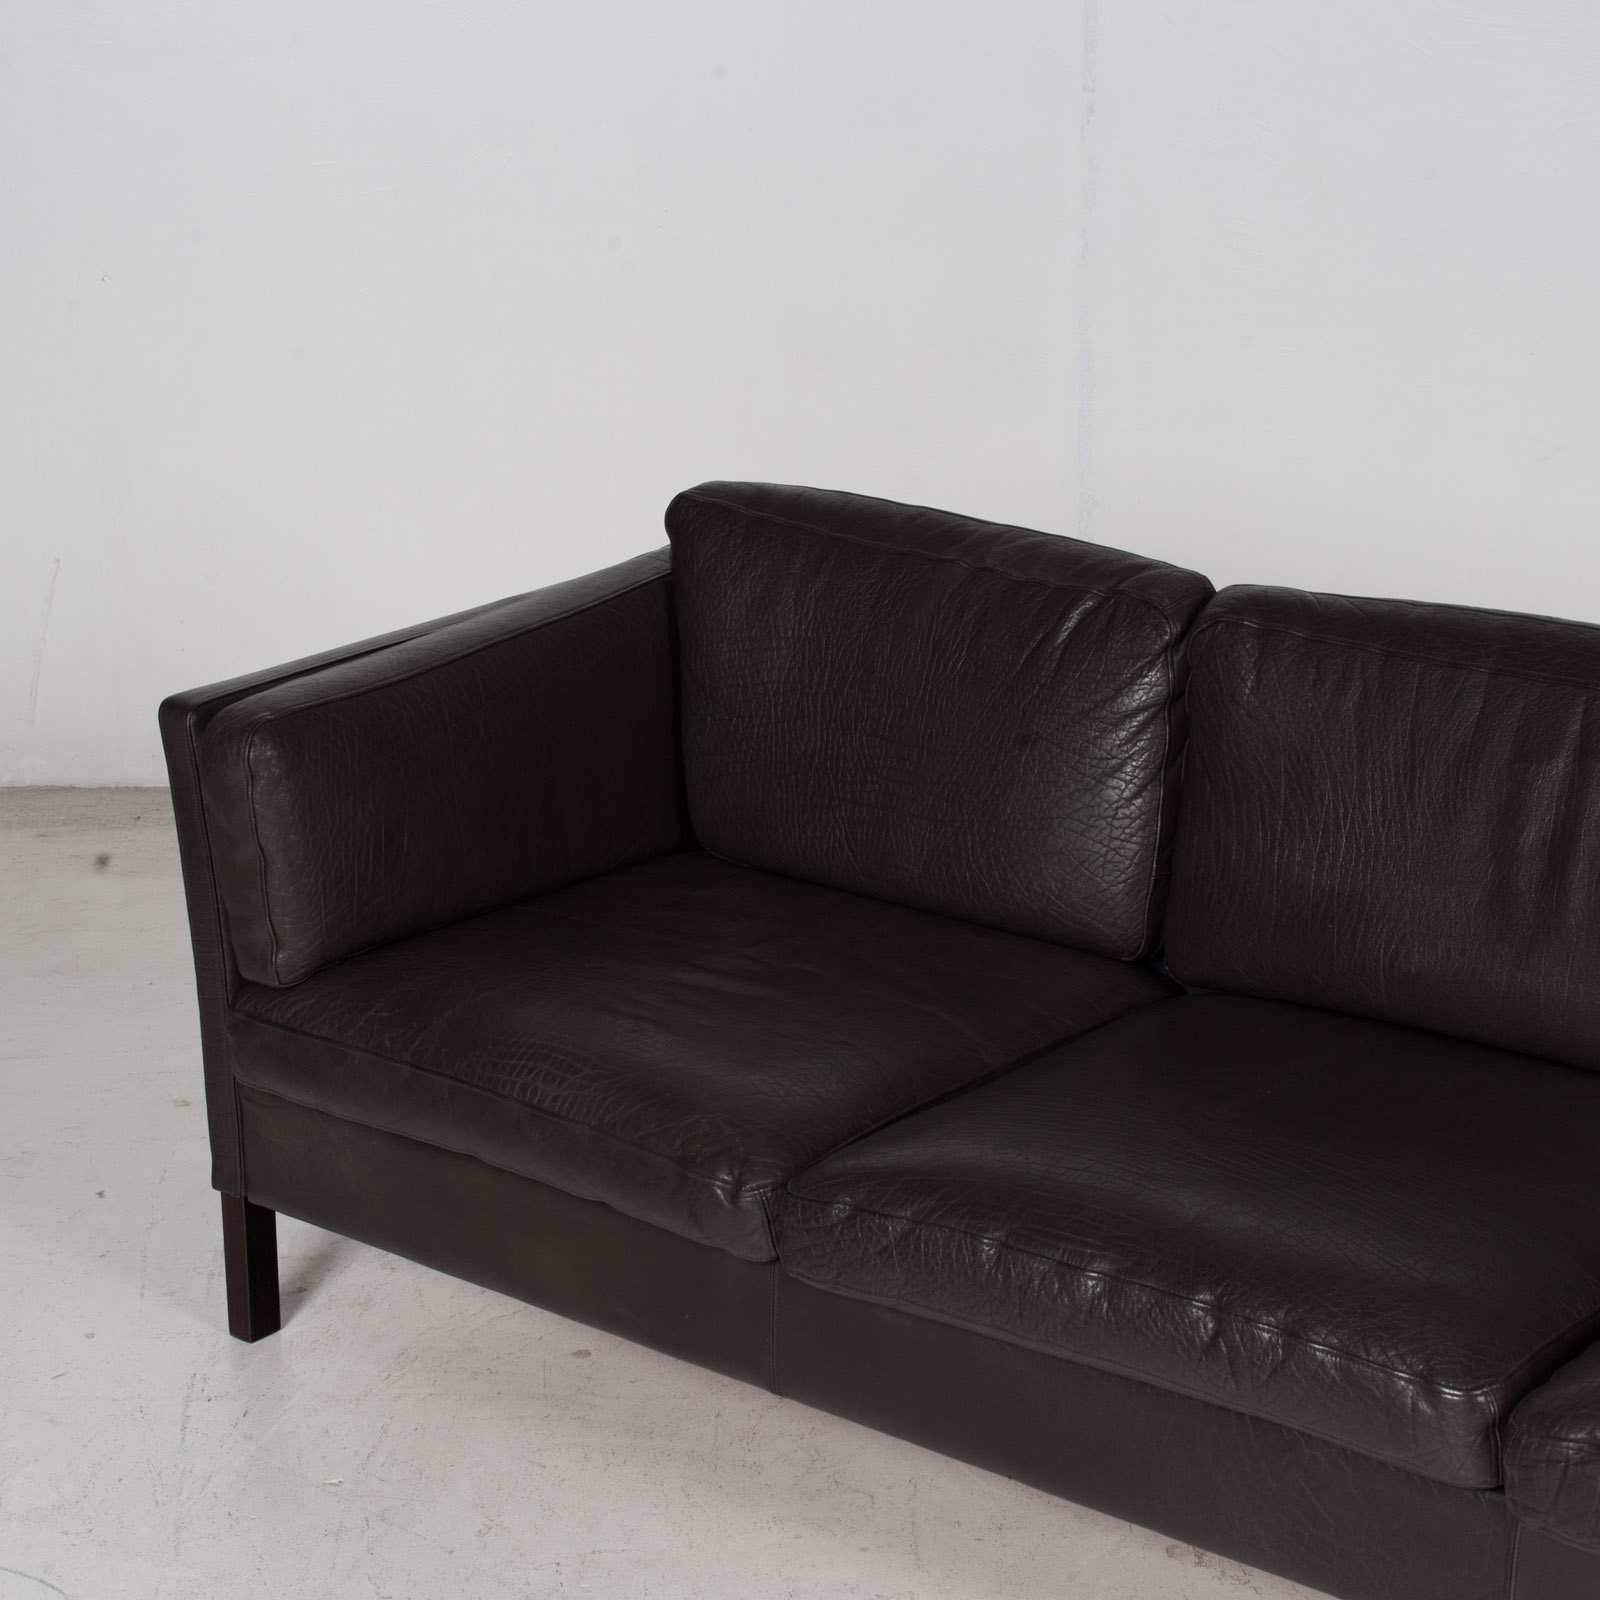 3 Seat Sofa In Dark Brown Leather, 1960s, Denmark 5